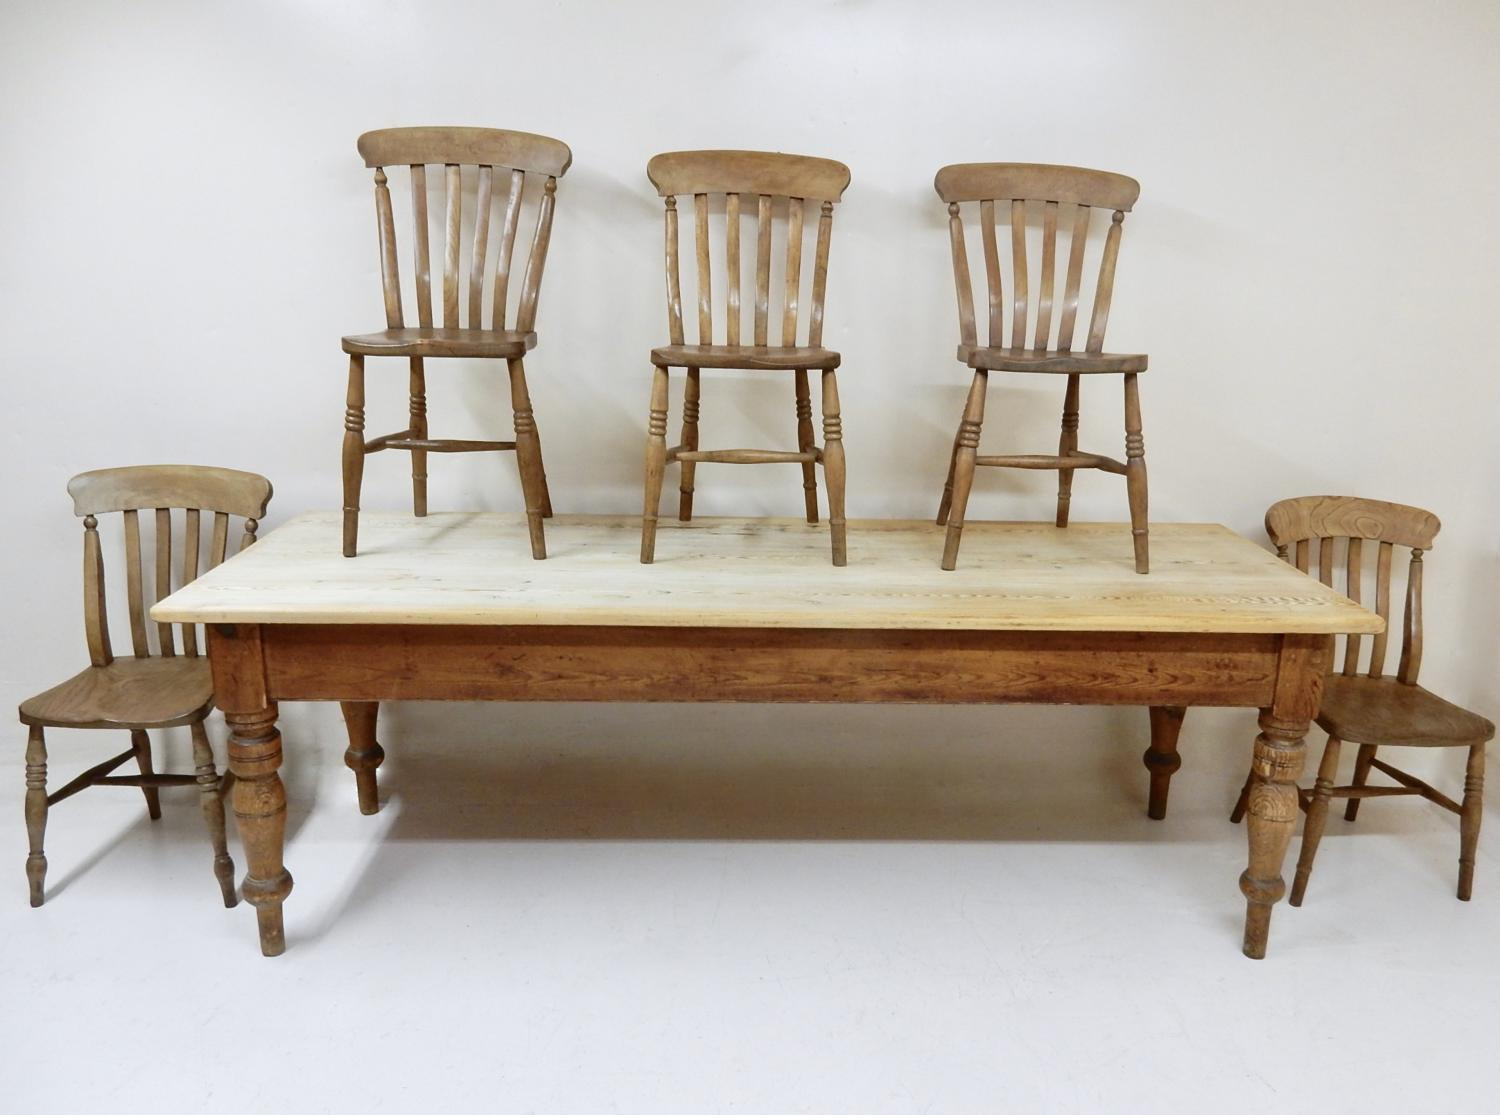 pine kitchen chairs ireland large round patio table and antique in tables